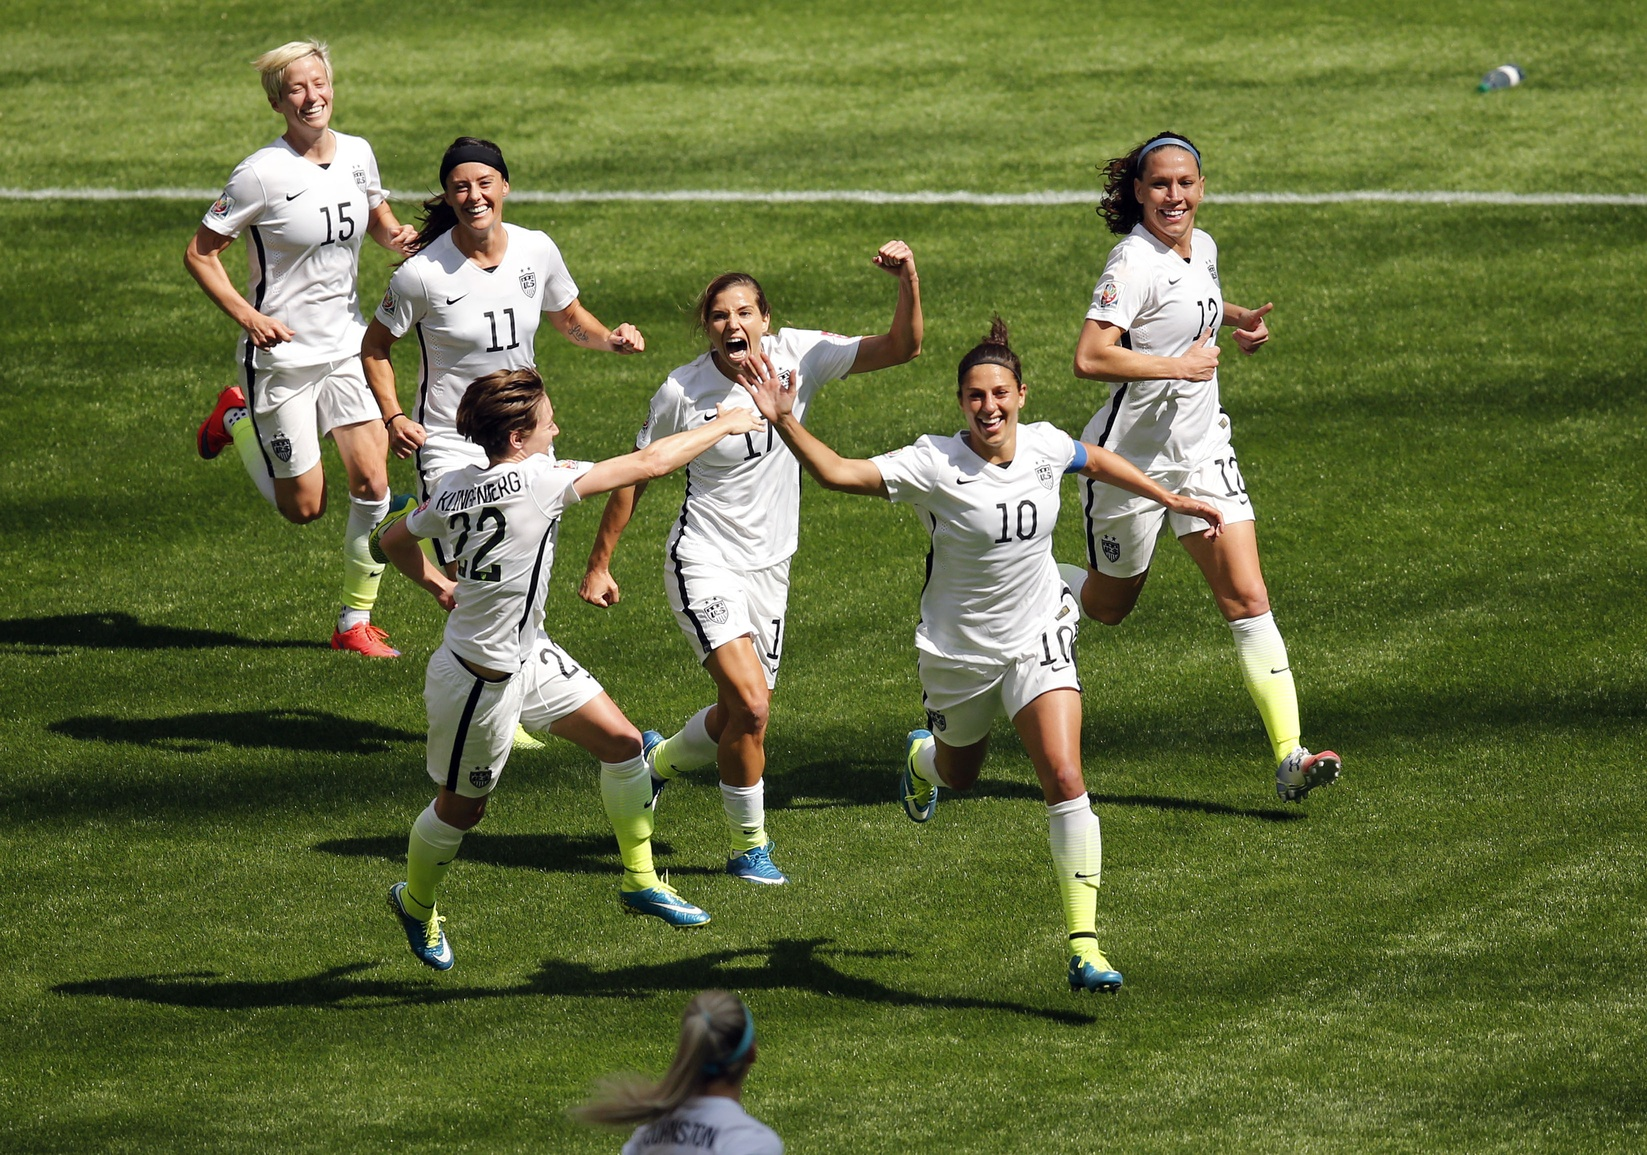 ... incredible goal for USA from halfway line [VIDEO] - World Soccer Talk